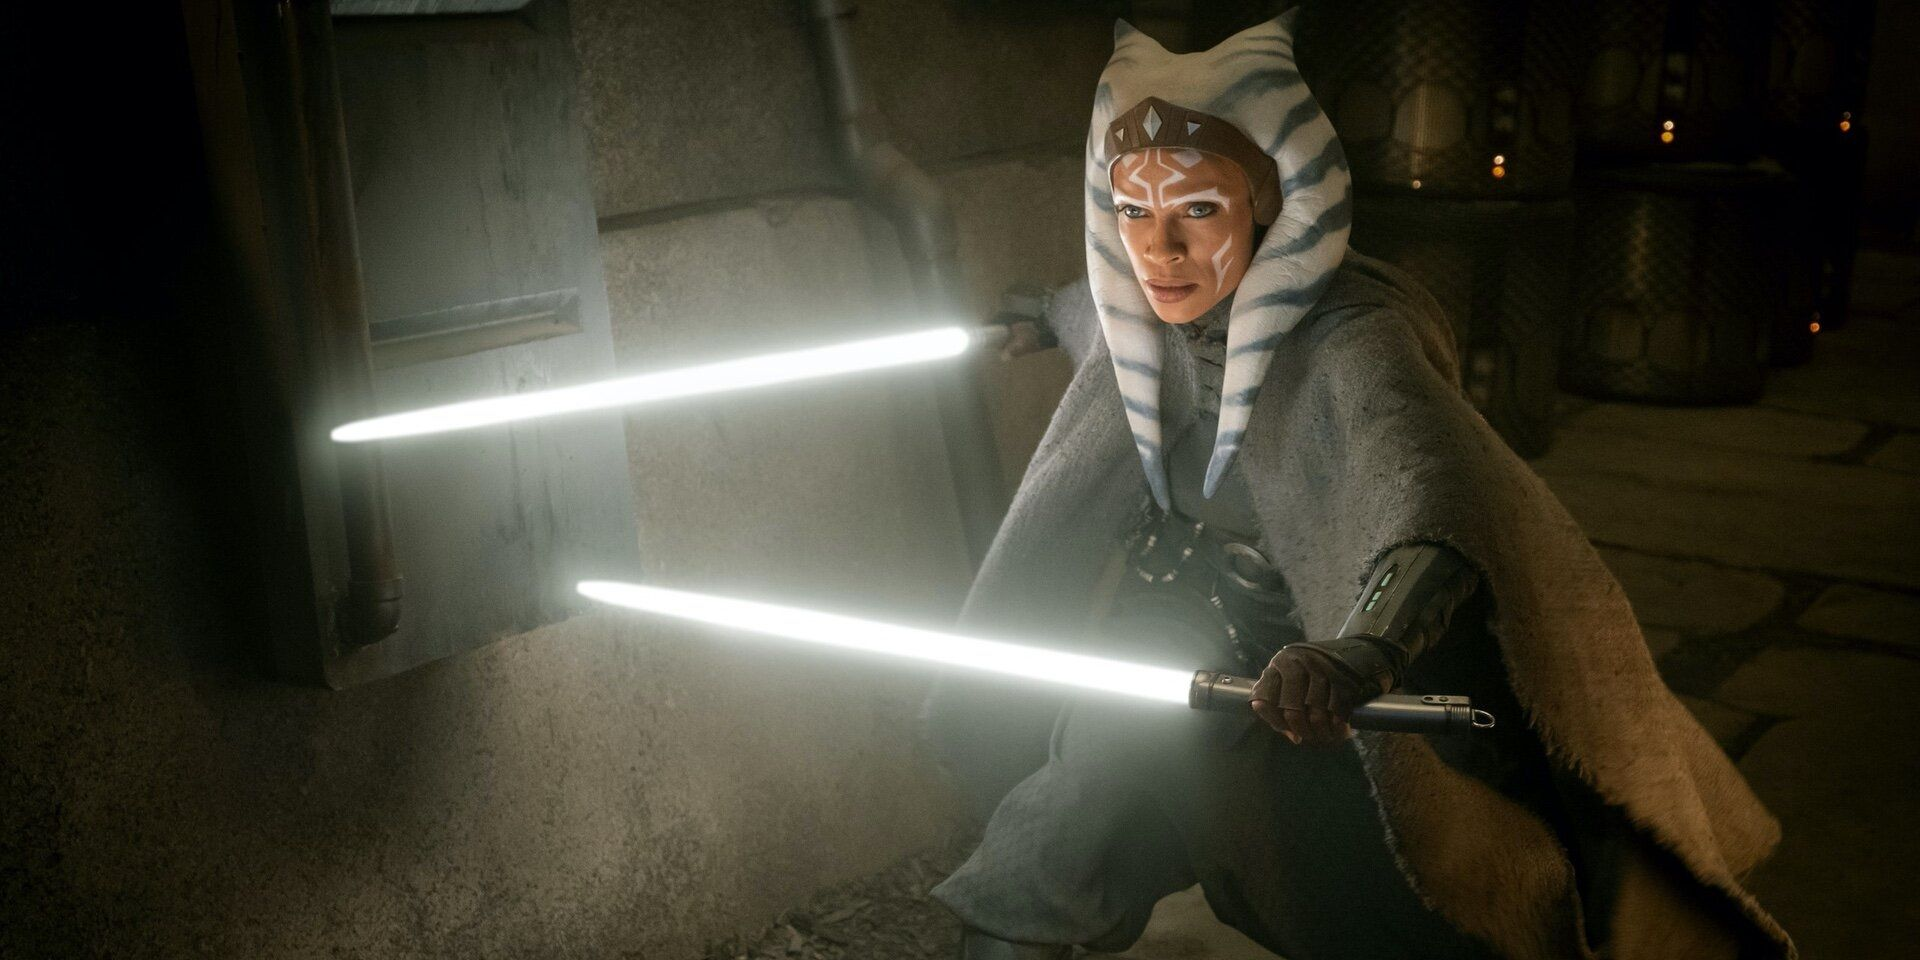 Rosario Dawson Gets In Lightsaber Fight As Ahsoka Tano On HBO Show Set